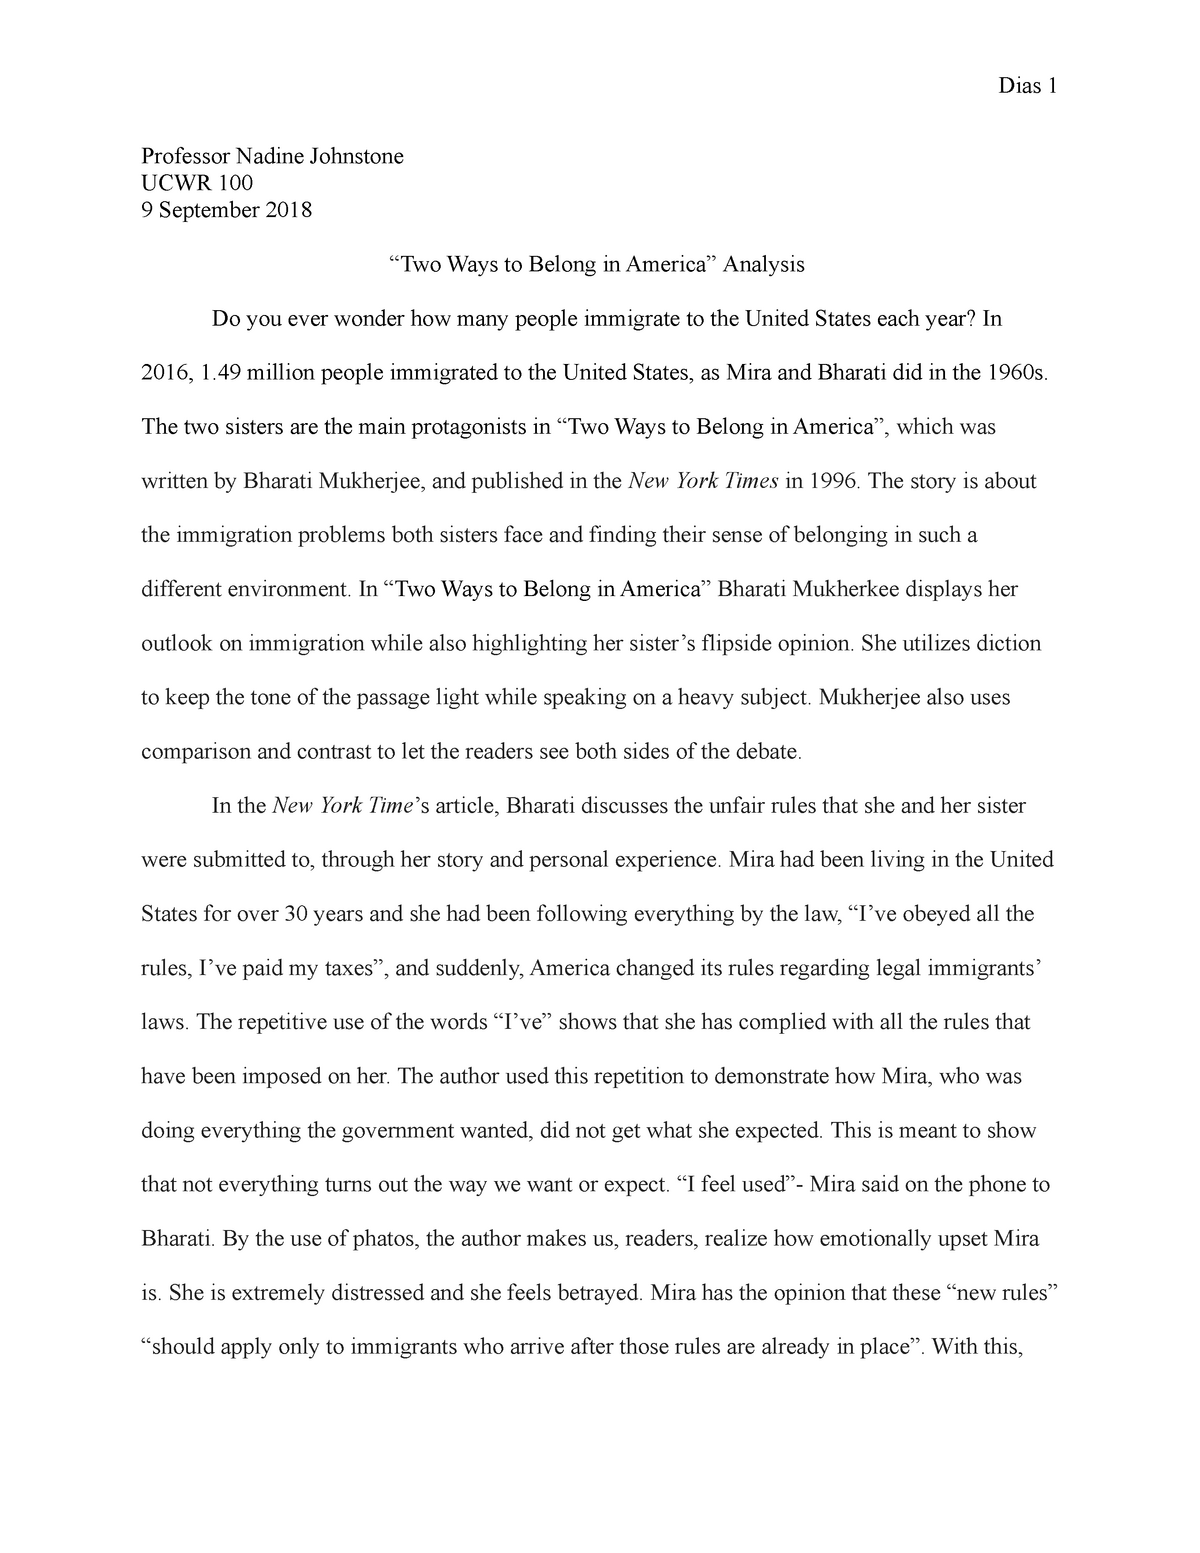 Two ways to belong in america essay